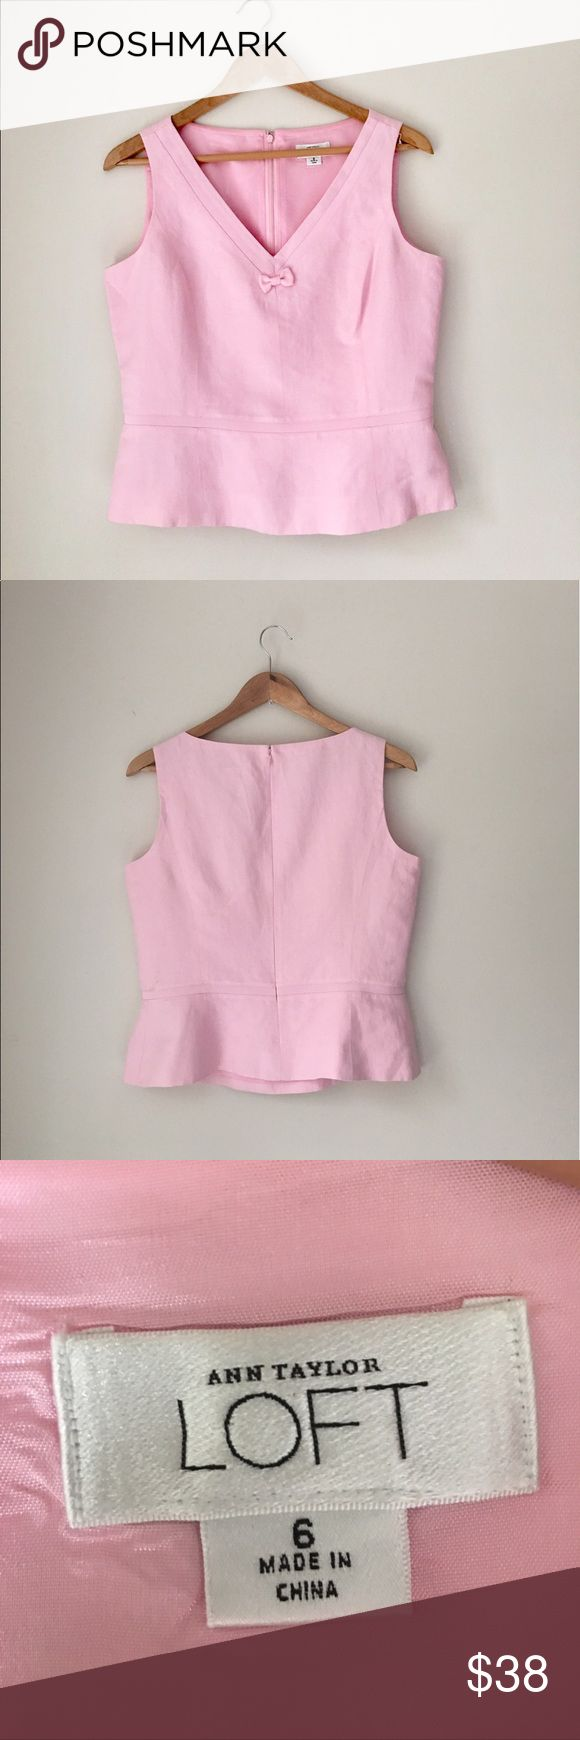 LOFT Pink Linen Sleeveless Peplum Top Gorgeous candy Pink Linen blend sleeveless peplum top by Ann Taylor LOFT. Size 6. EUC. LOFT Tops Tunics